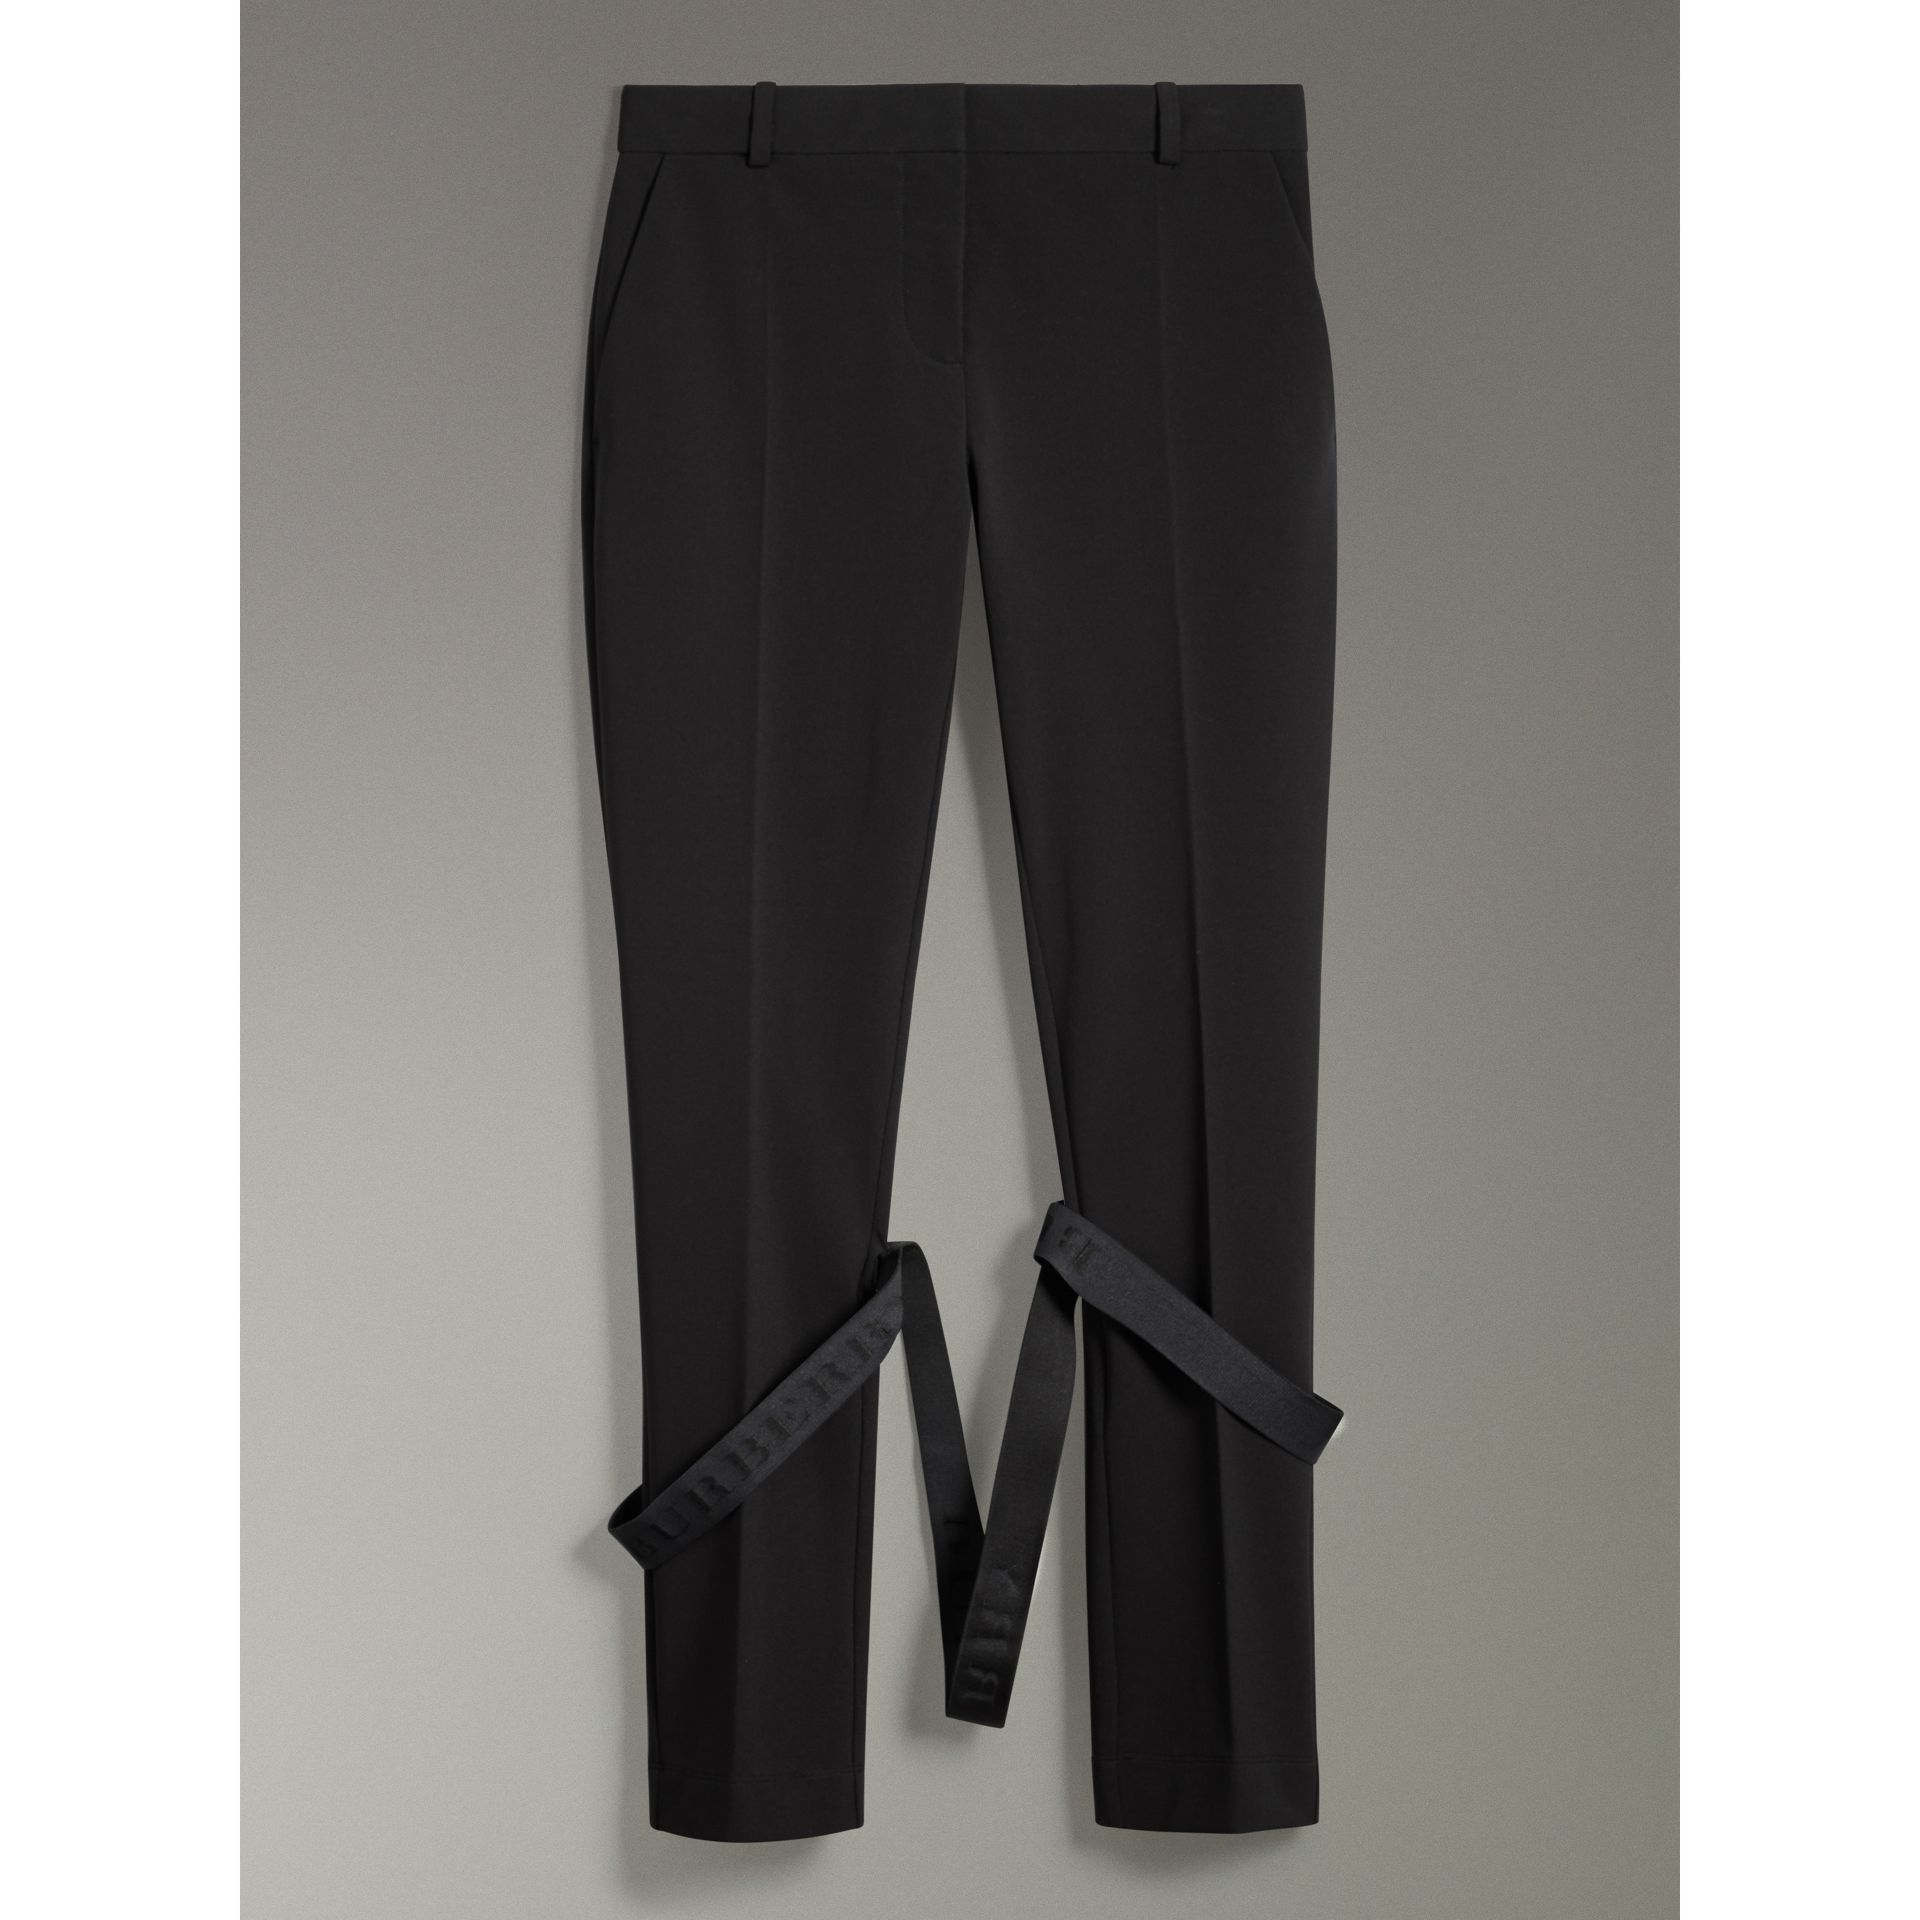 Strap Detail Jersey Tailored Trousers in Black - Women | Burberry Canada - gallery image 3